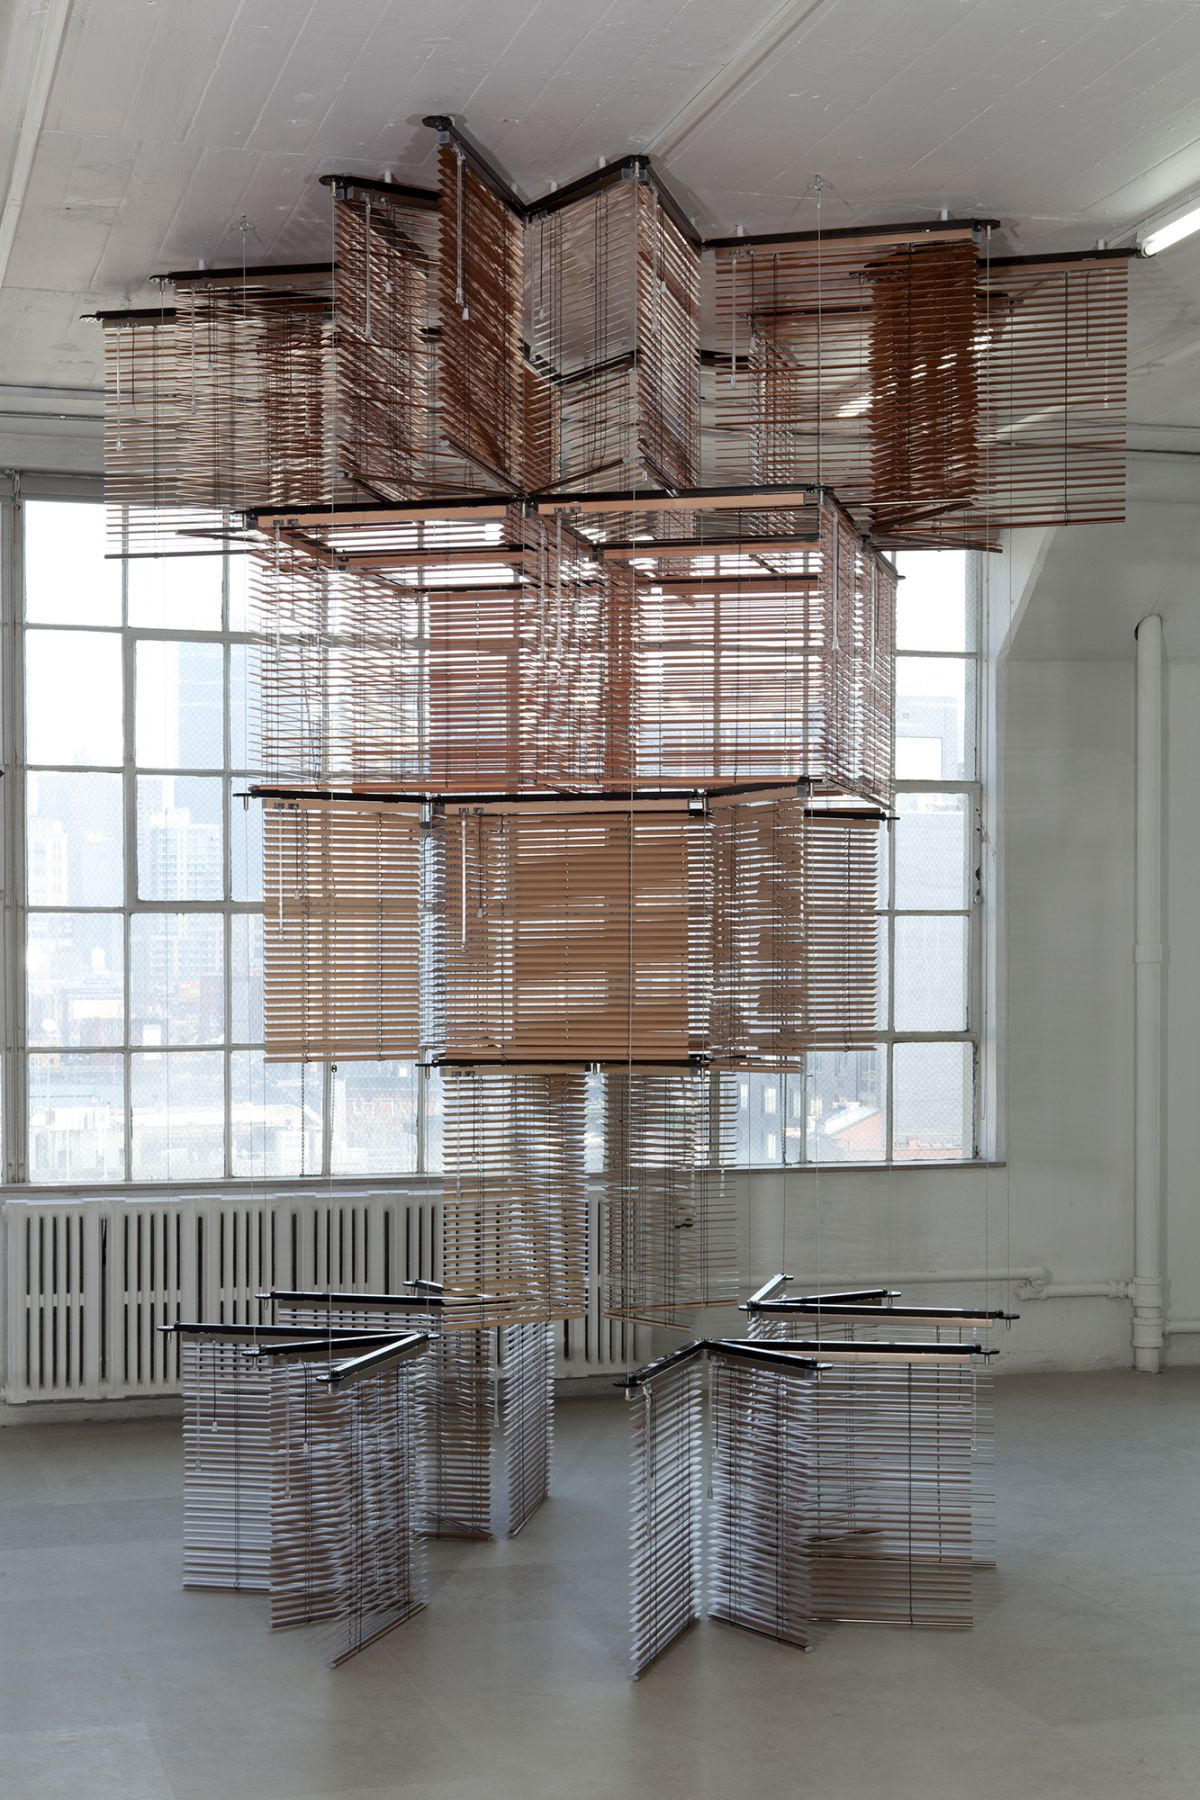 Haegue Yang Tower on String - Seated in New York, 2012 Aluminum Venetian blinds, powder-coated aluminum frame 137 x 120 x 120 inches (348 x 304.8 x 304.8 cm)